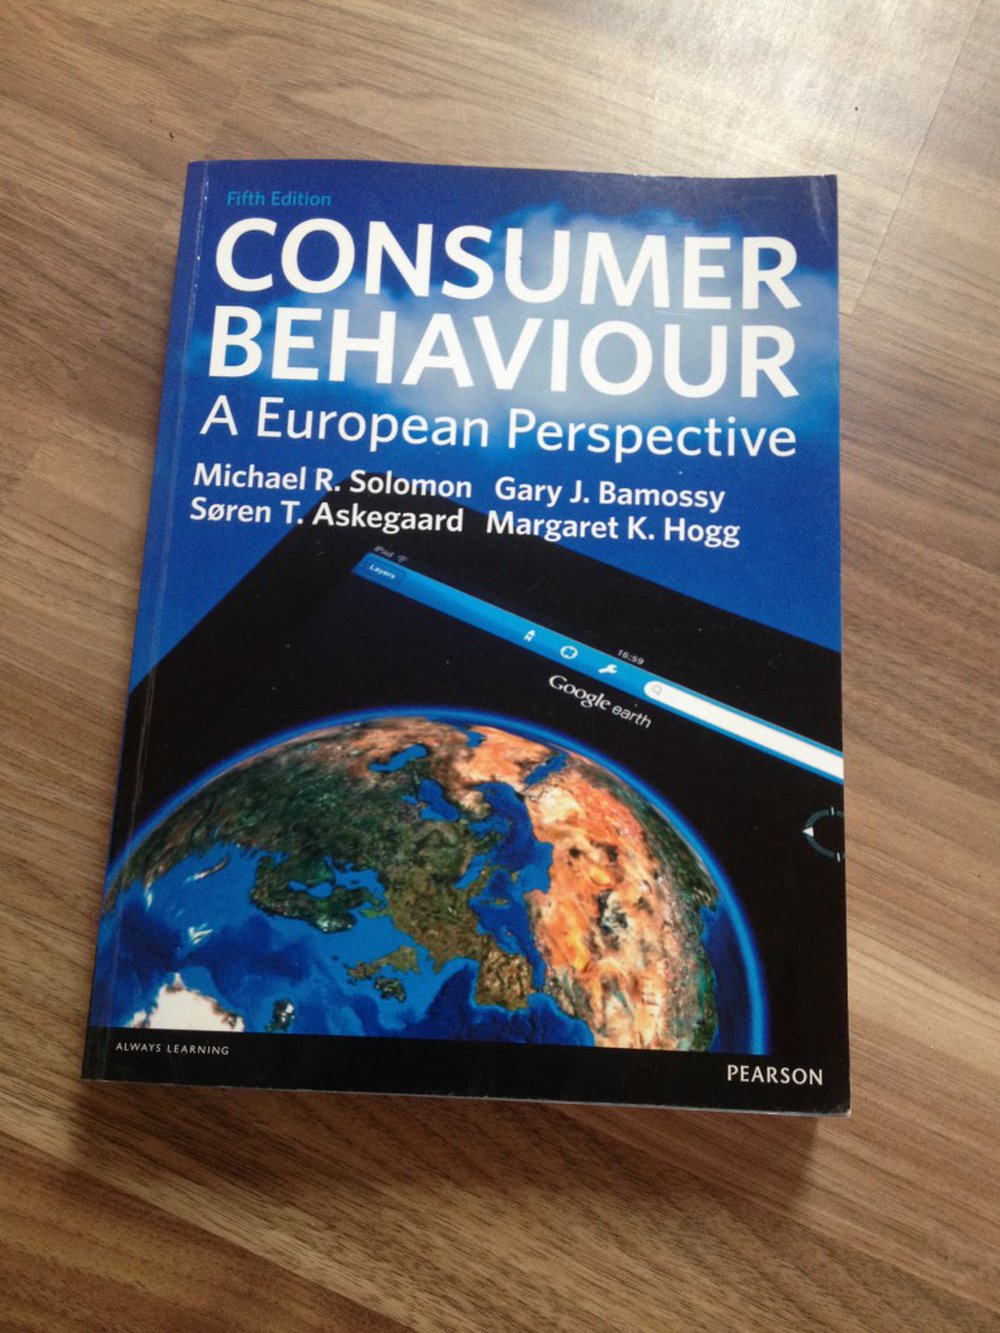 consumer behaviour a european perspective 5th edition pdf